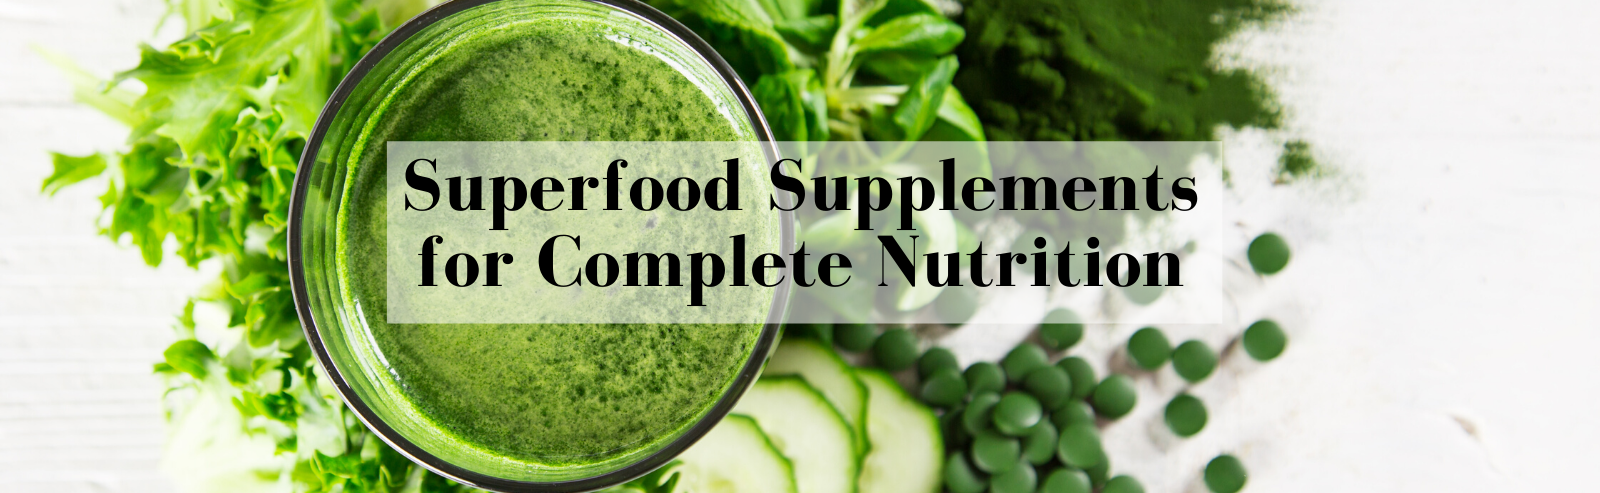 BioHealth Nutrition - Organic Superfood Supplements Powders